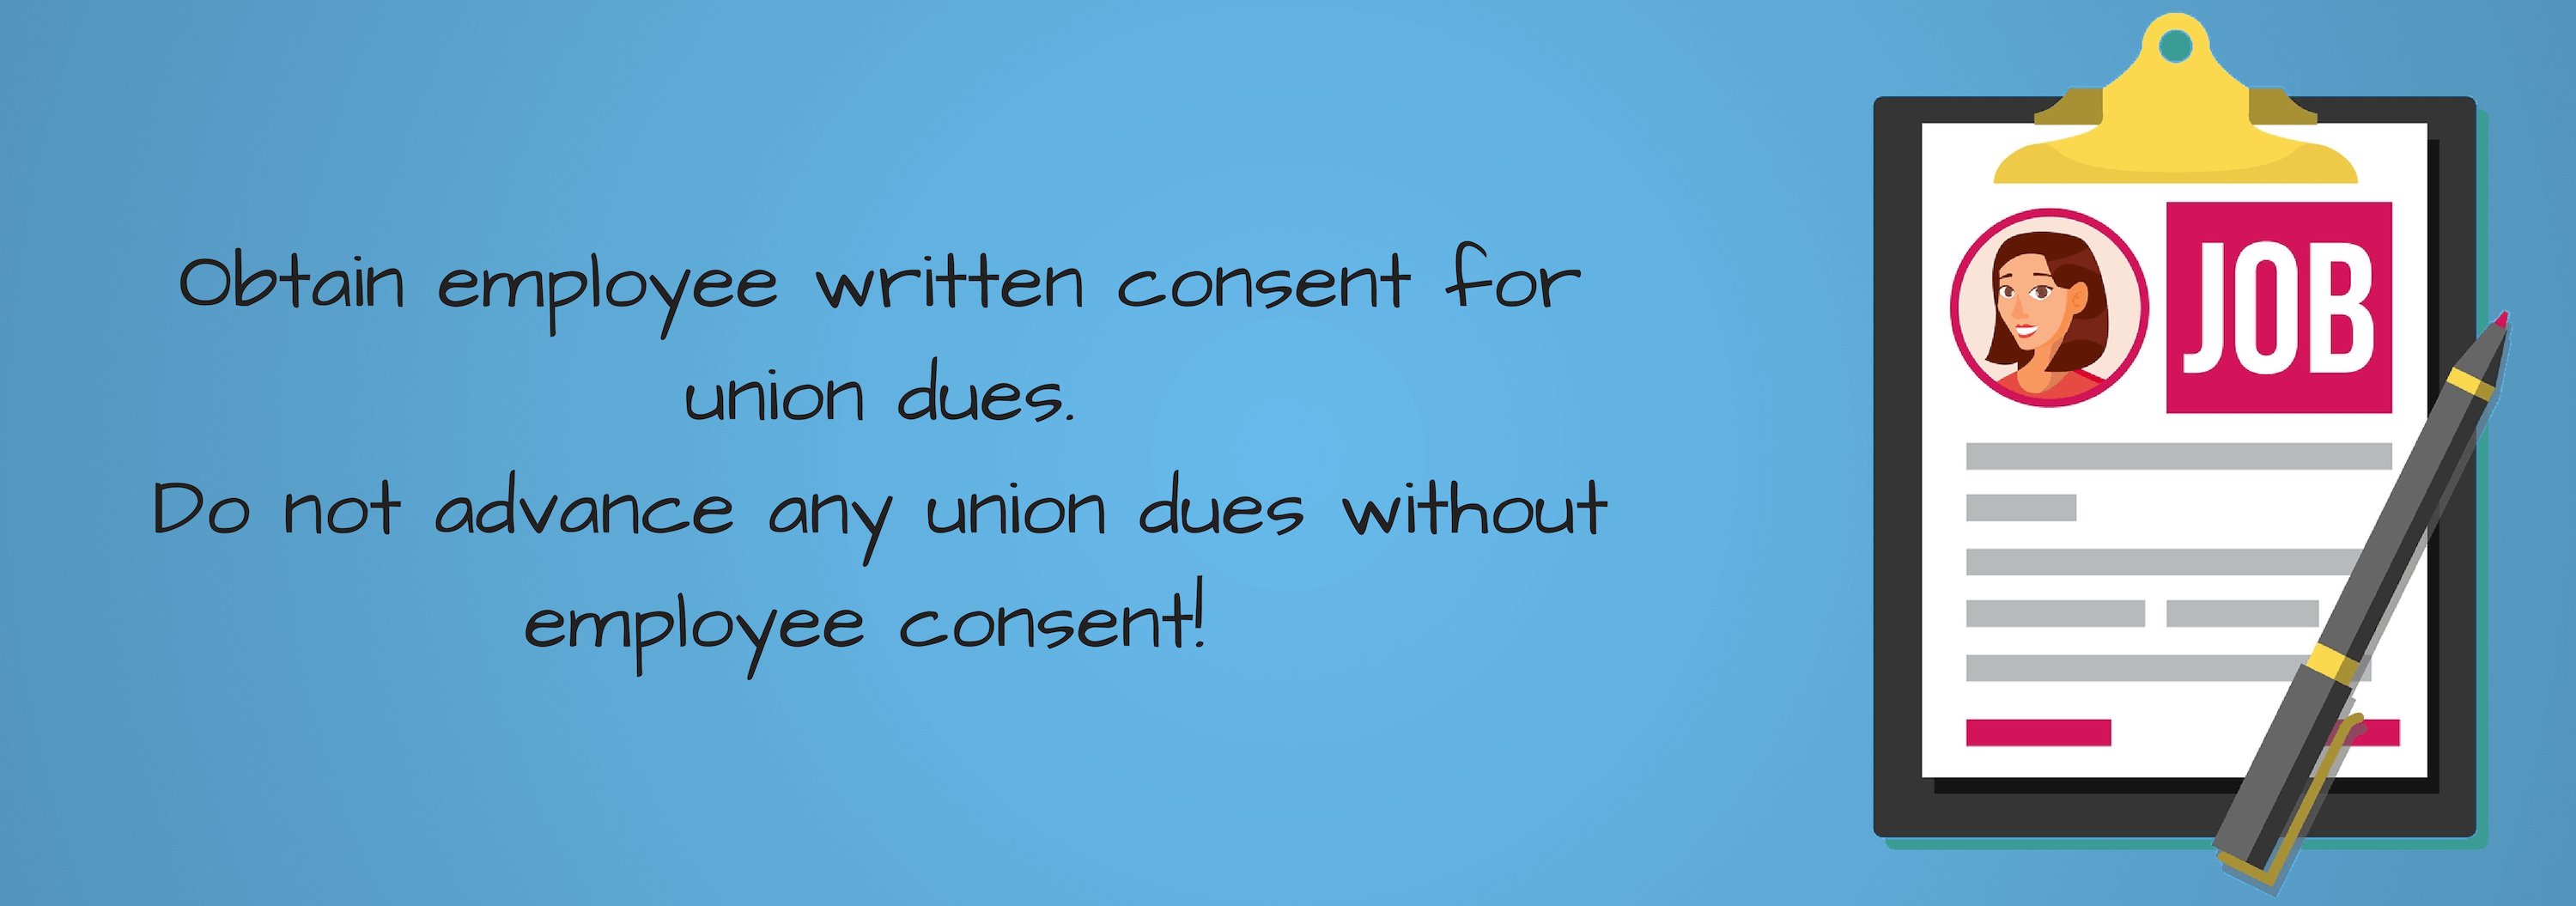 Employers must obtain written consent from employees to collect union dues infographic